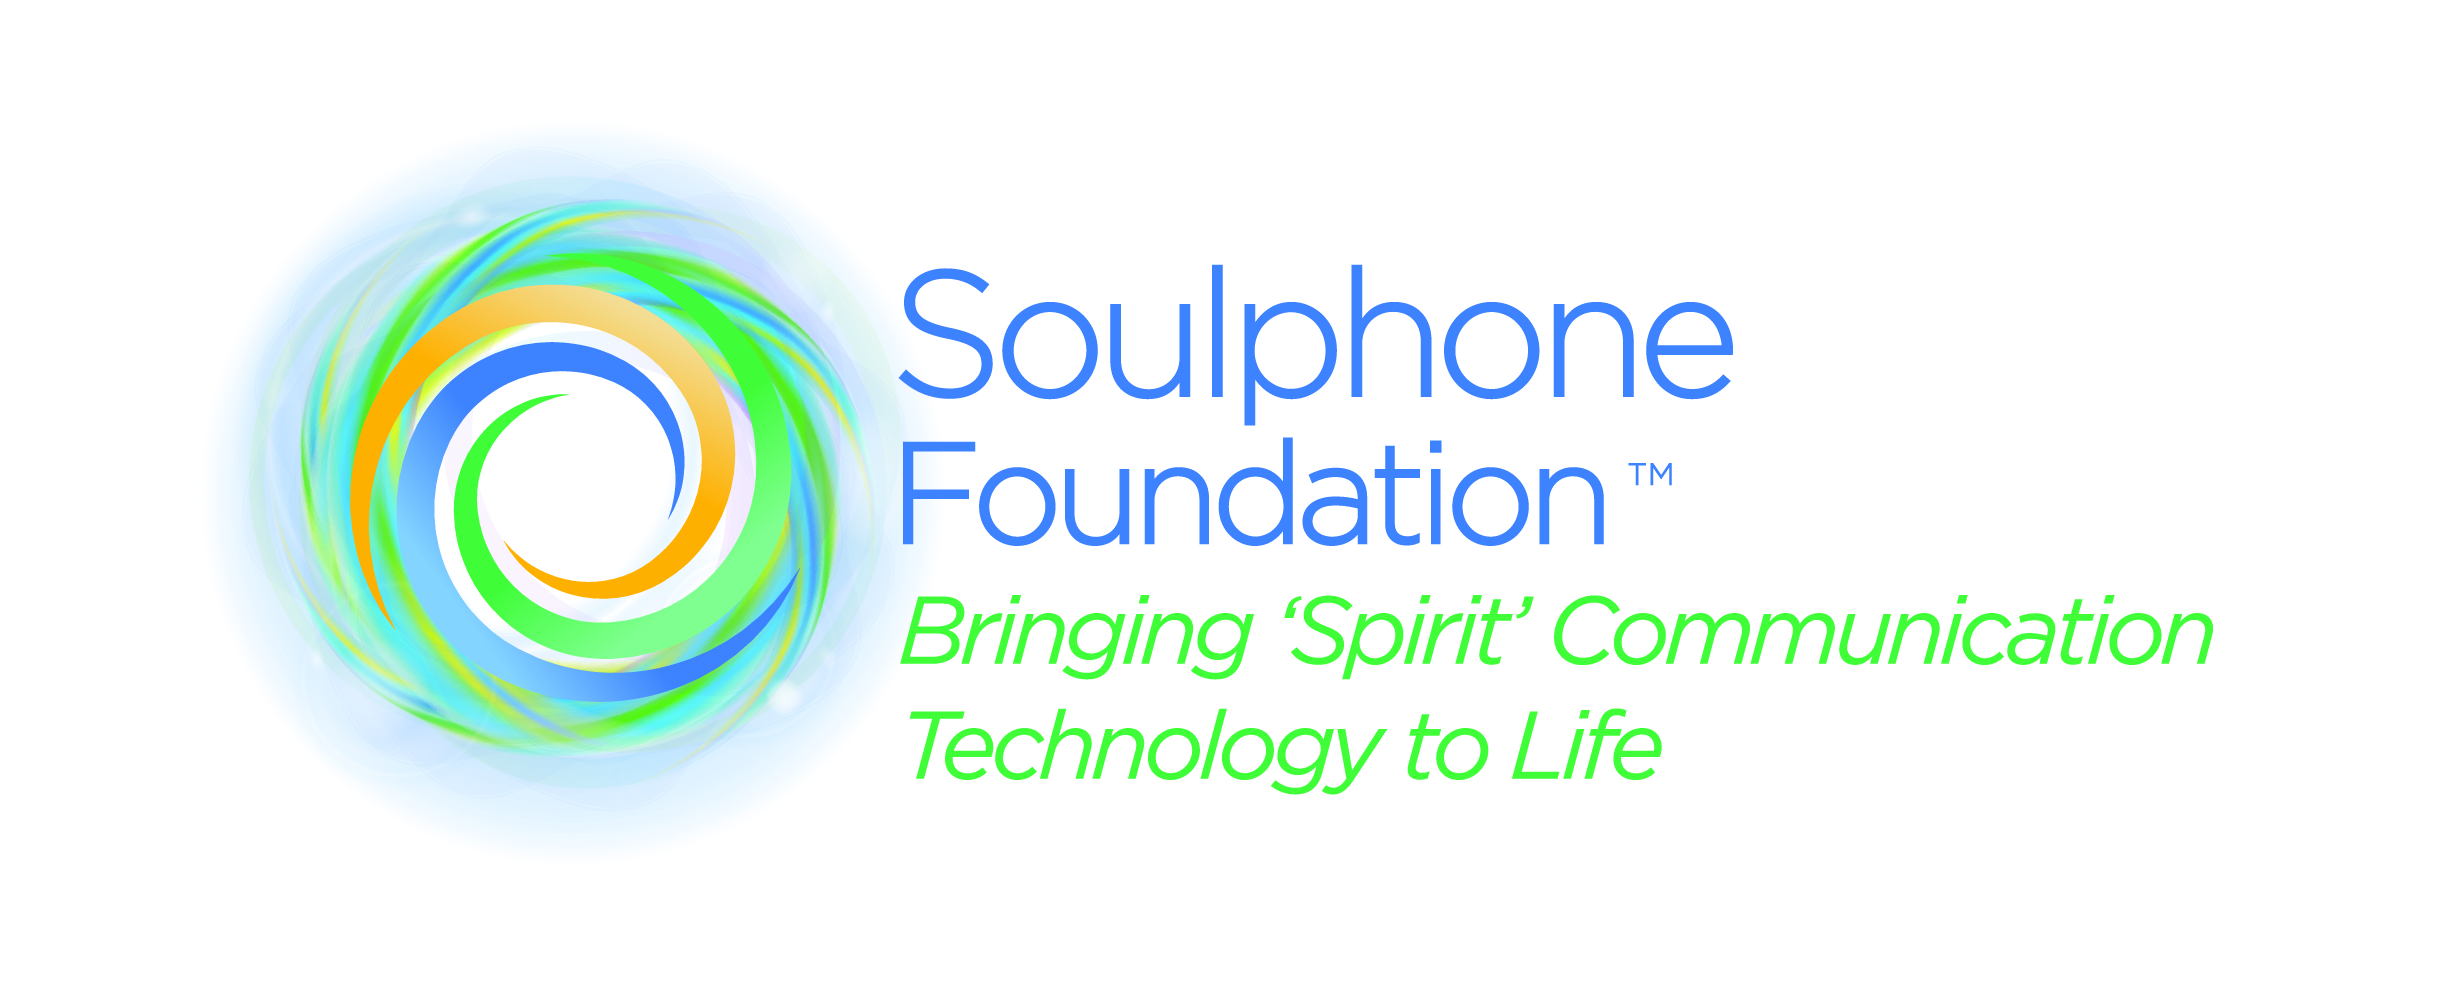 The SoulPhone Project has now definitively demonstrated scientifically that life continues after bodily death.  Further, emerging university-based technology will allow contact with 'departed' loved ones and luminaries who want to help us heal our world.